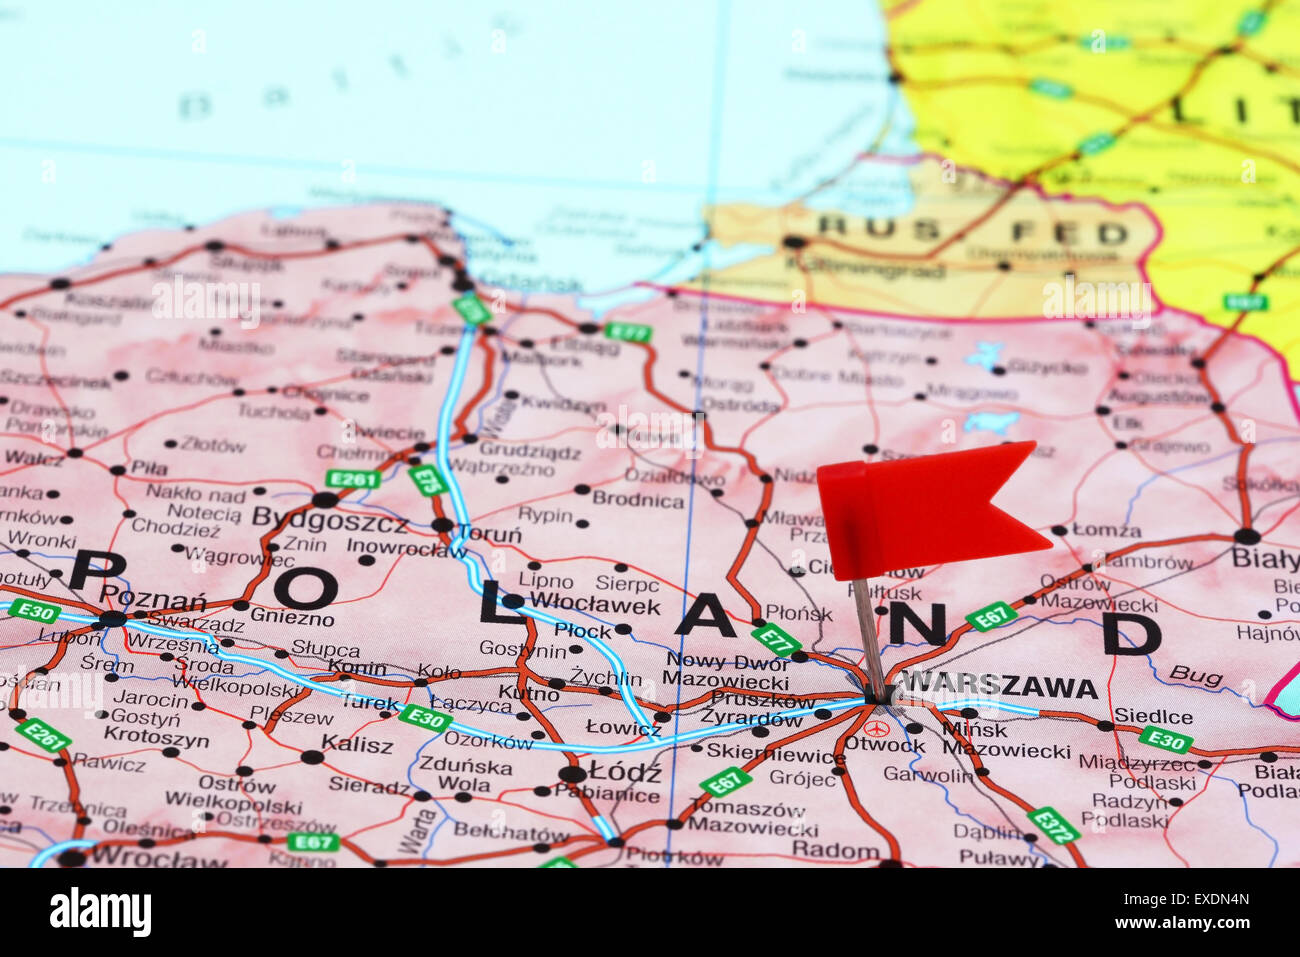 Warsaw Europe Map.Warsaw Pinned On A Map Of Europe Stock Photo 85124501 Alamy